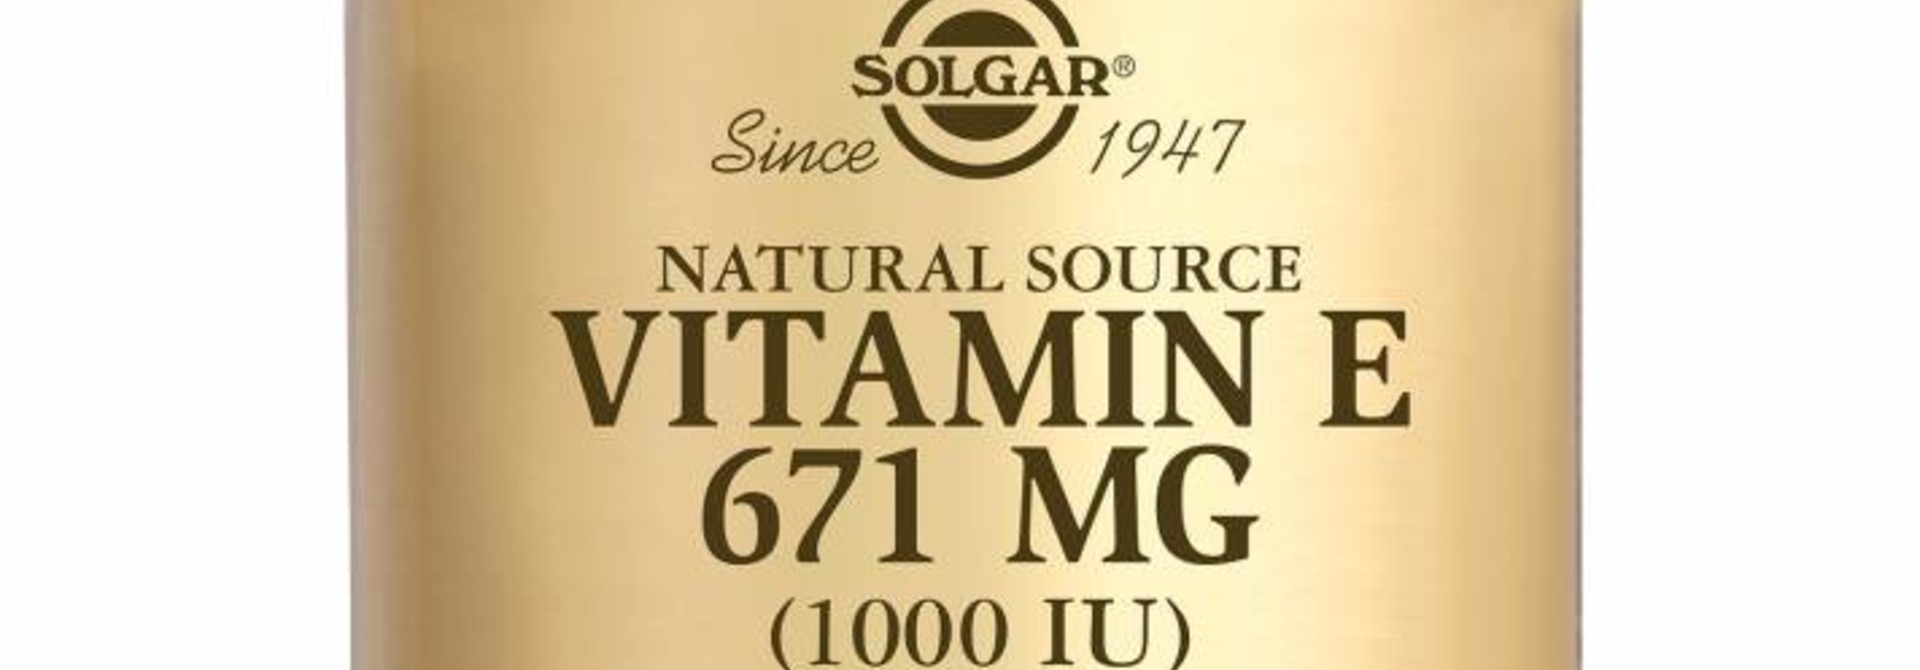 Vitamin E 671 mg/1000 IU Complex 100 softgels